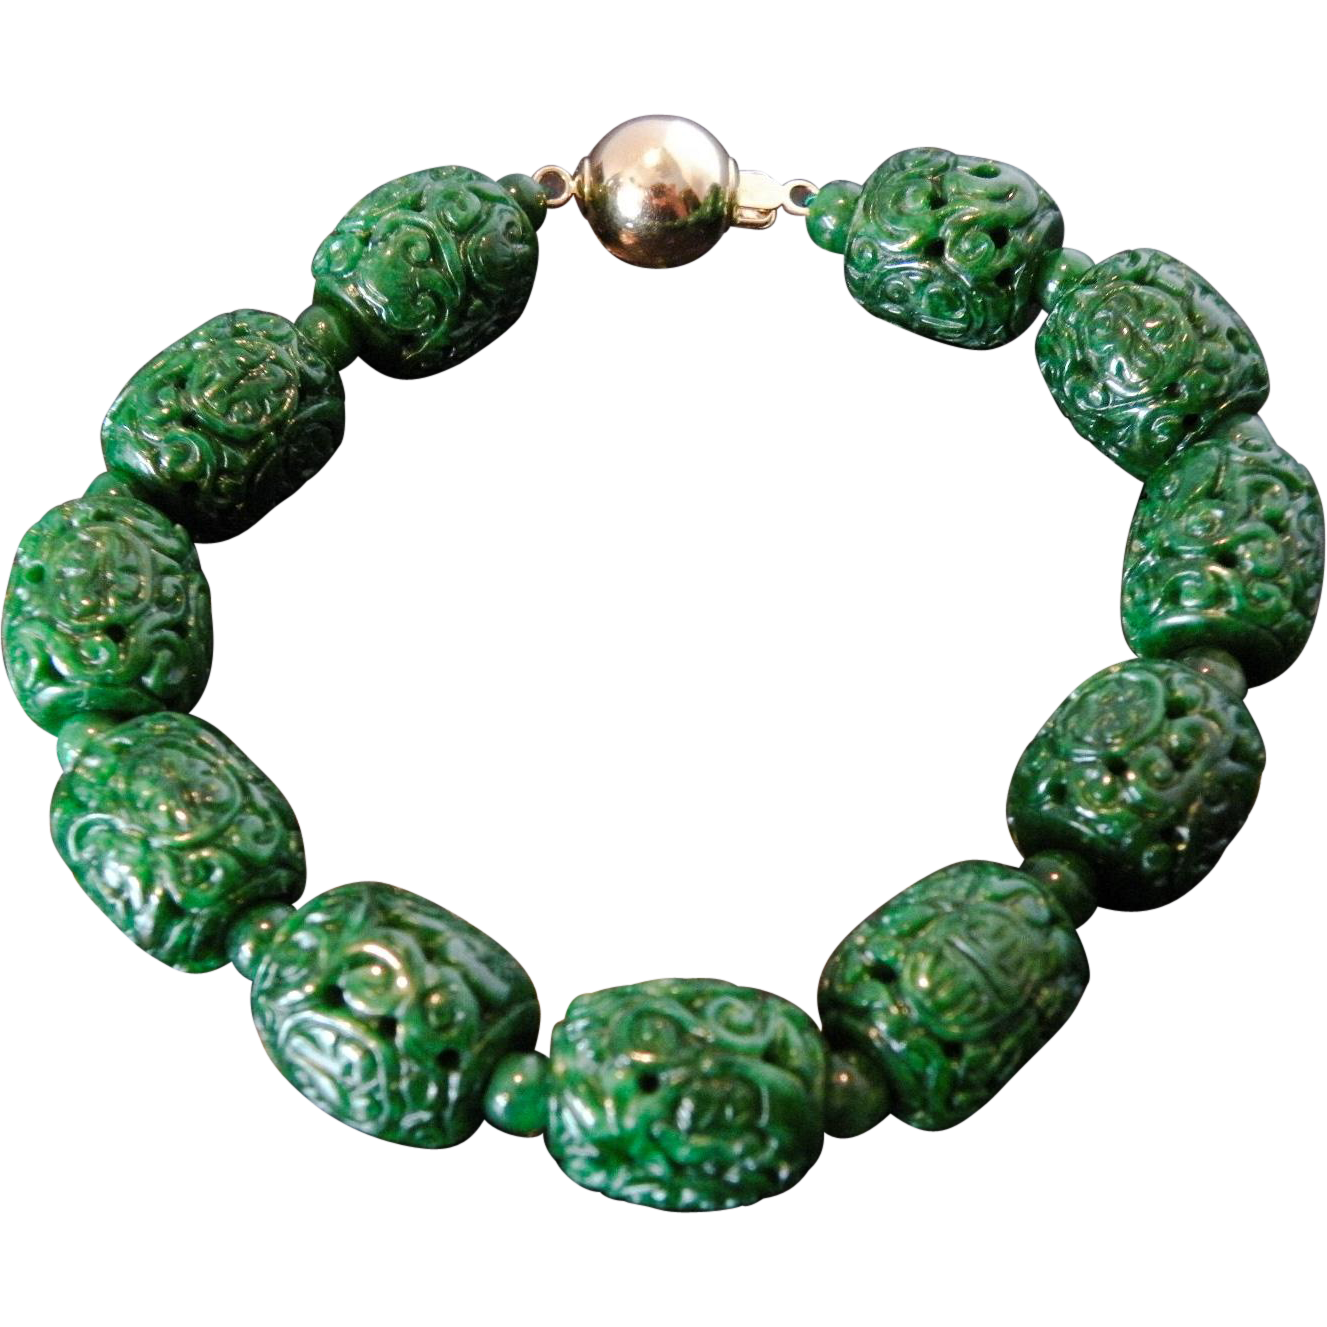 Jade Jadeite Vintage Chinese 14K Bracelet with Pierced Hollow Green Jade Beads